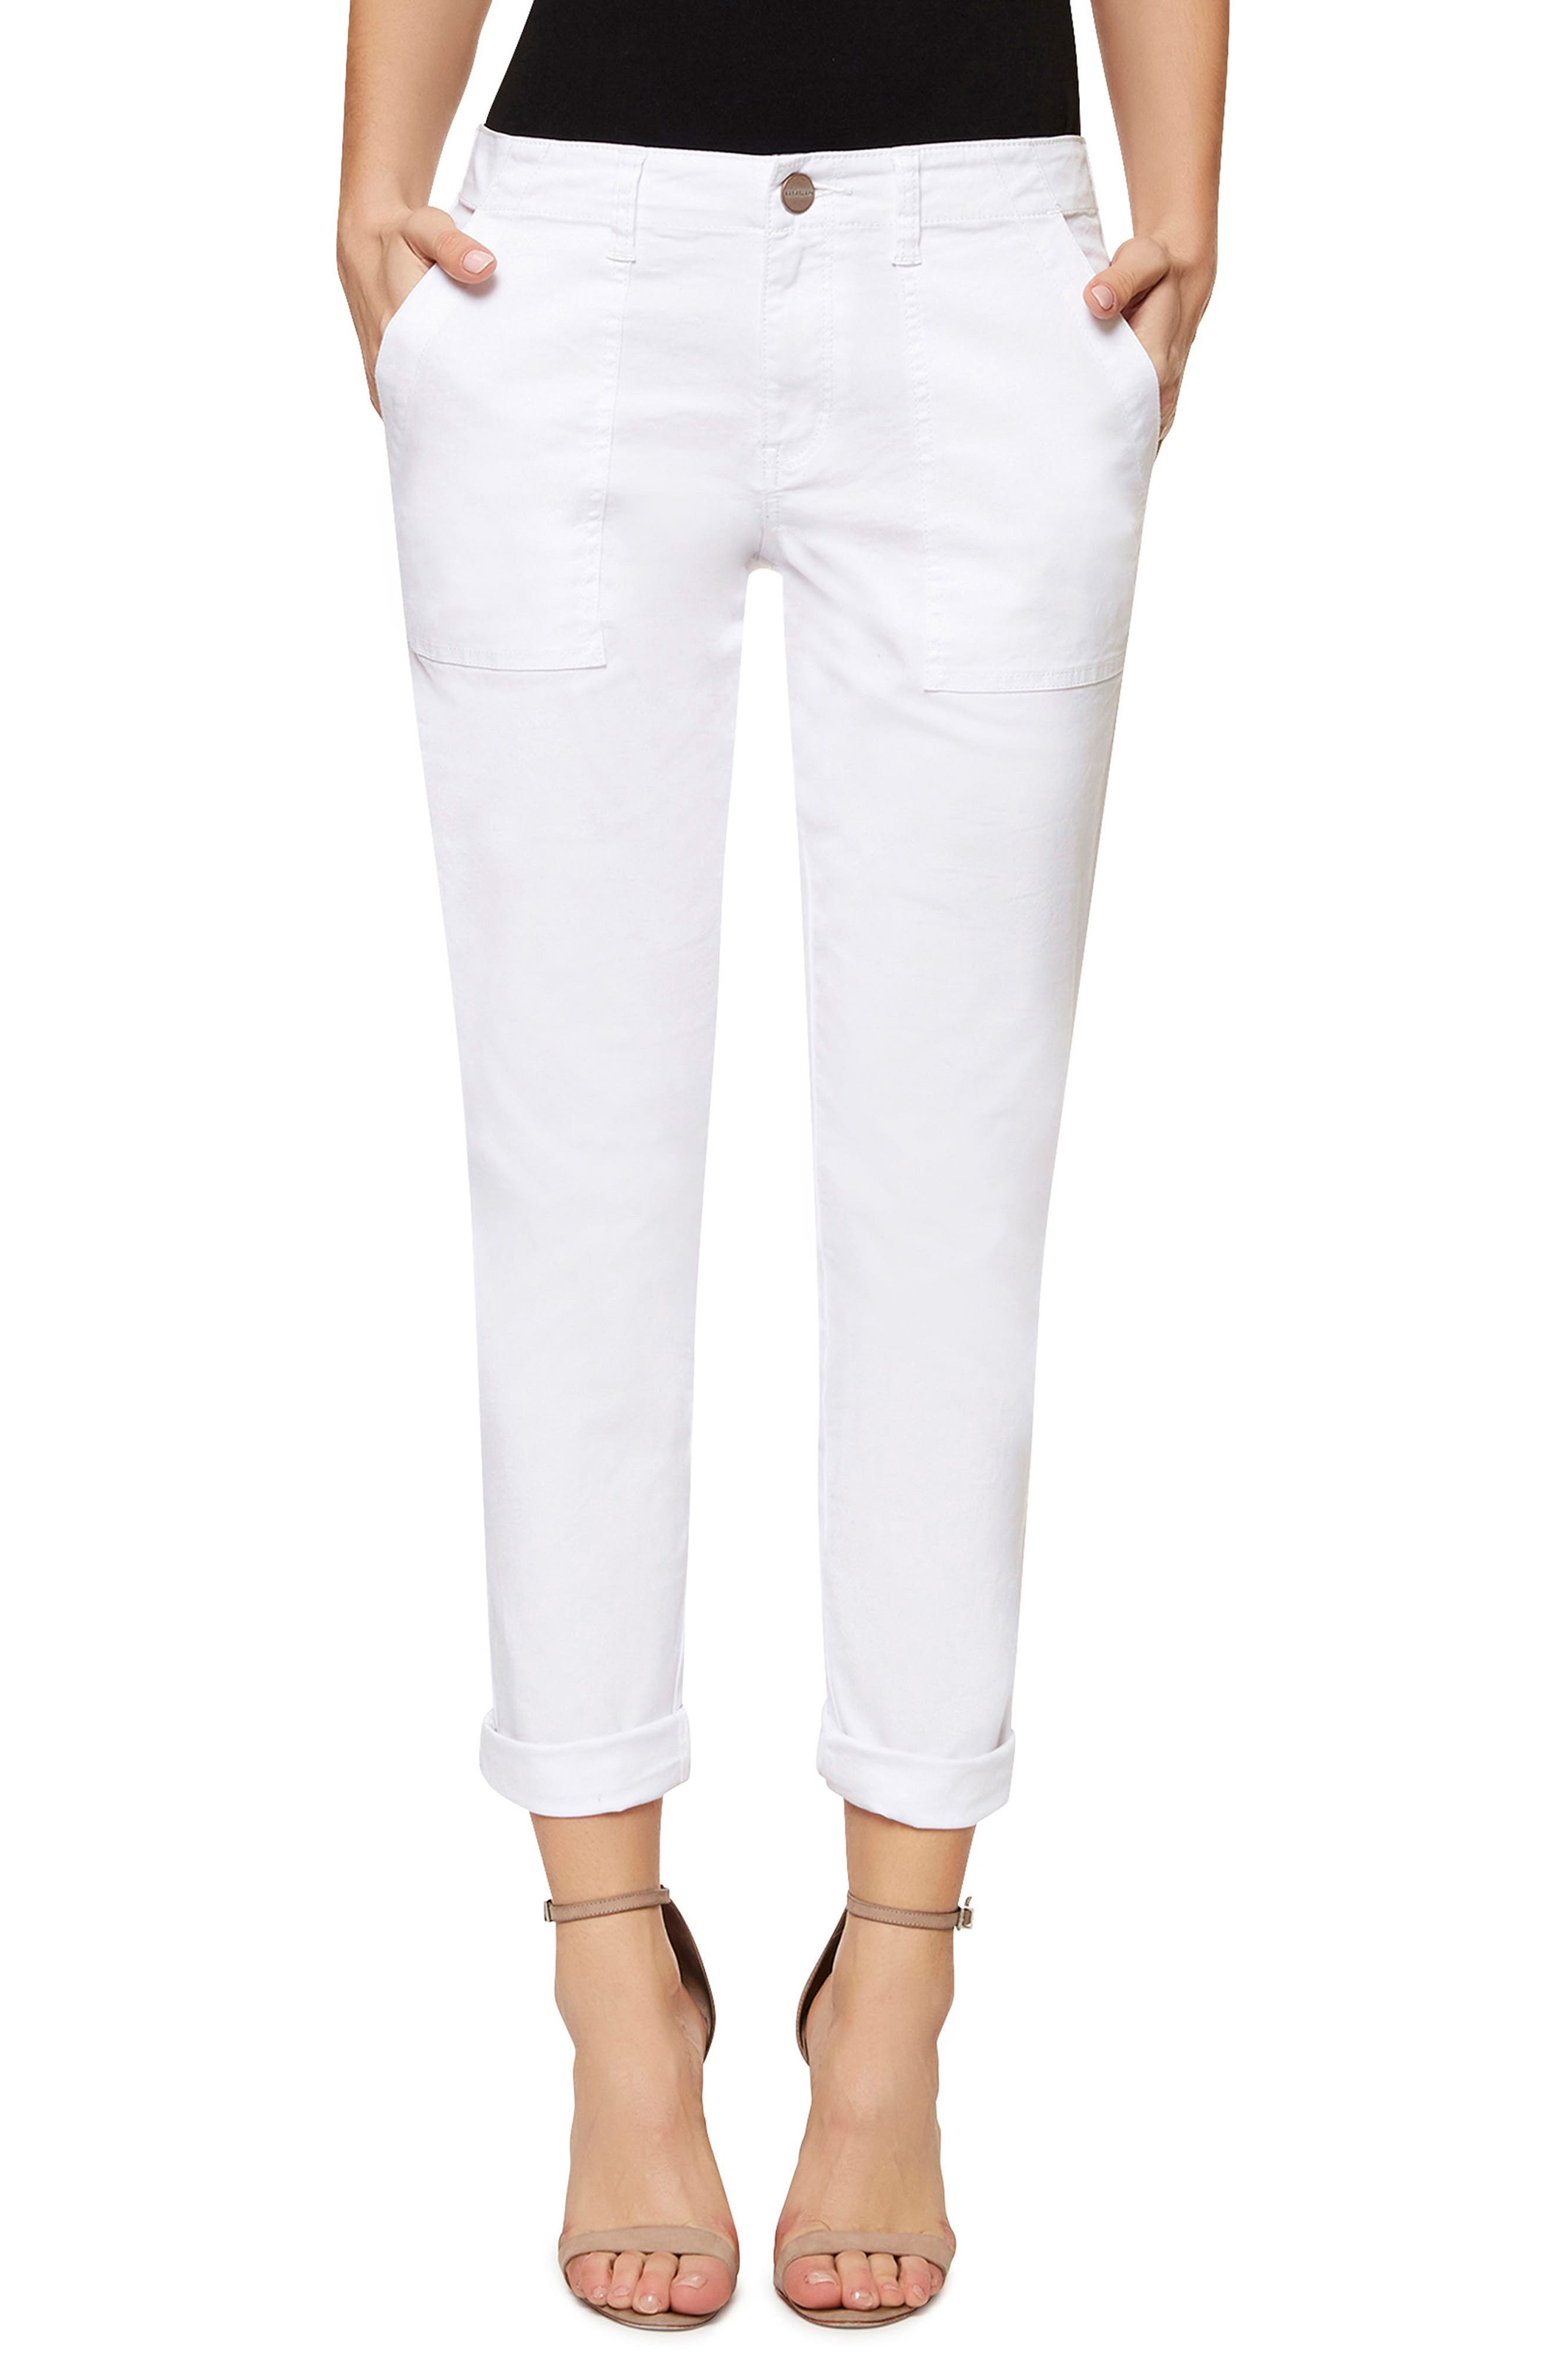 White Cropped Pants for Women: Jeans, Print, Capri & More | Nordstrom